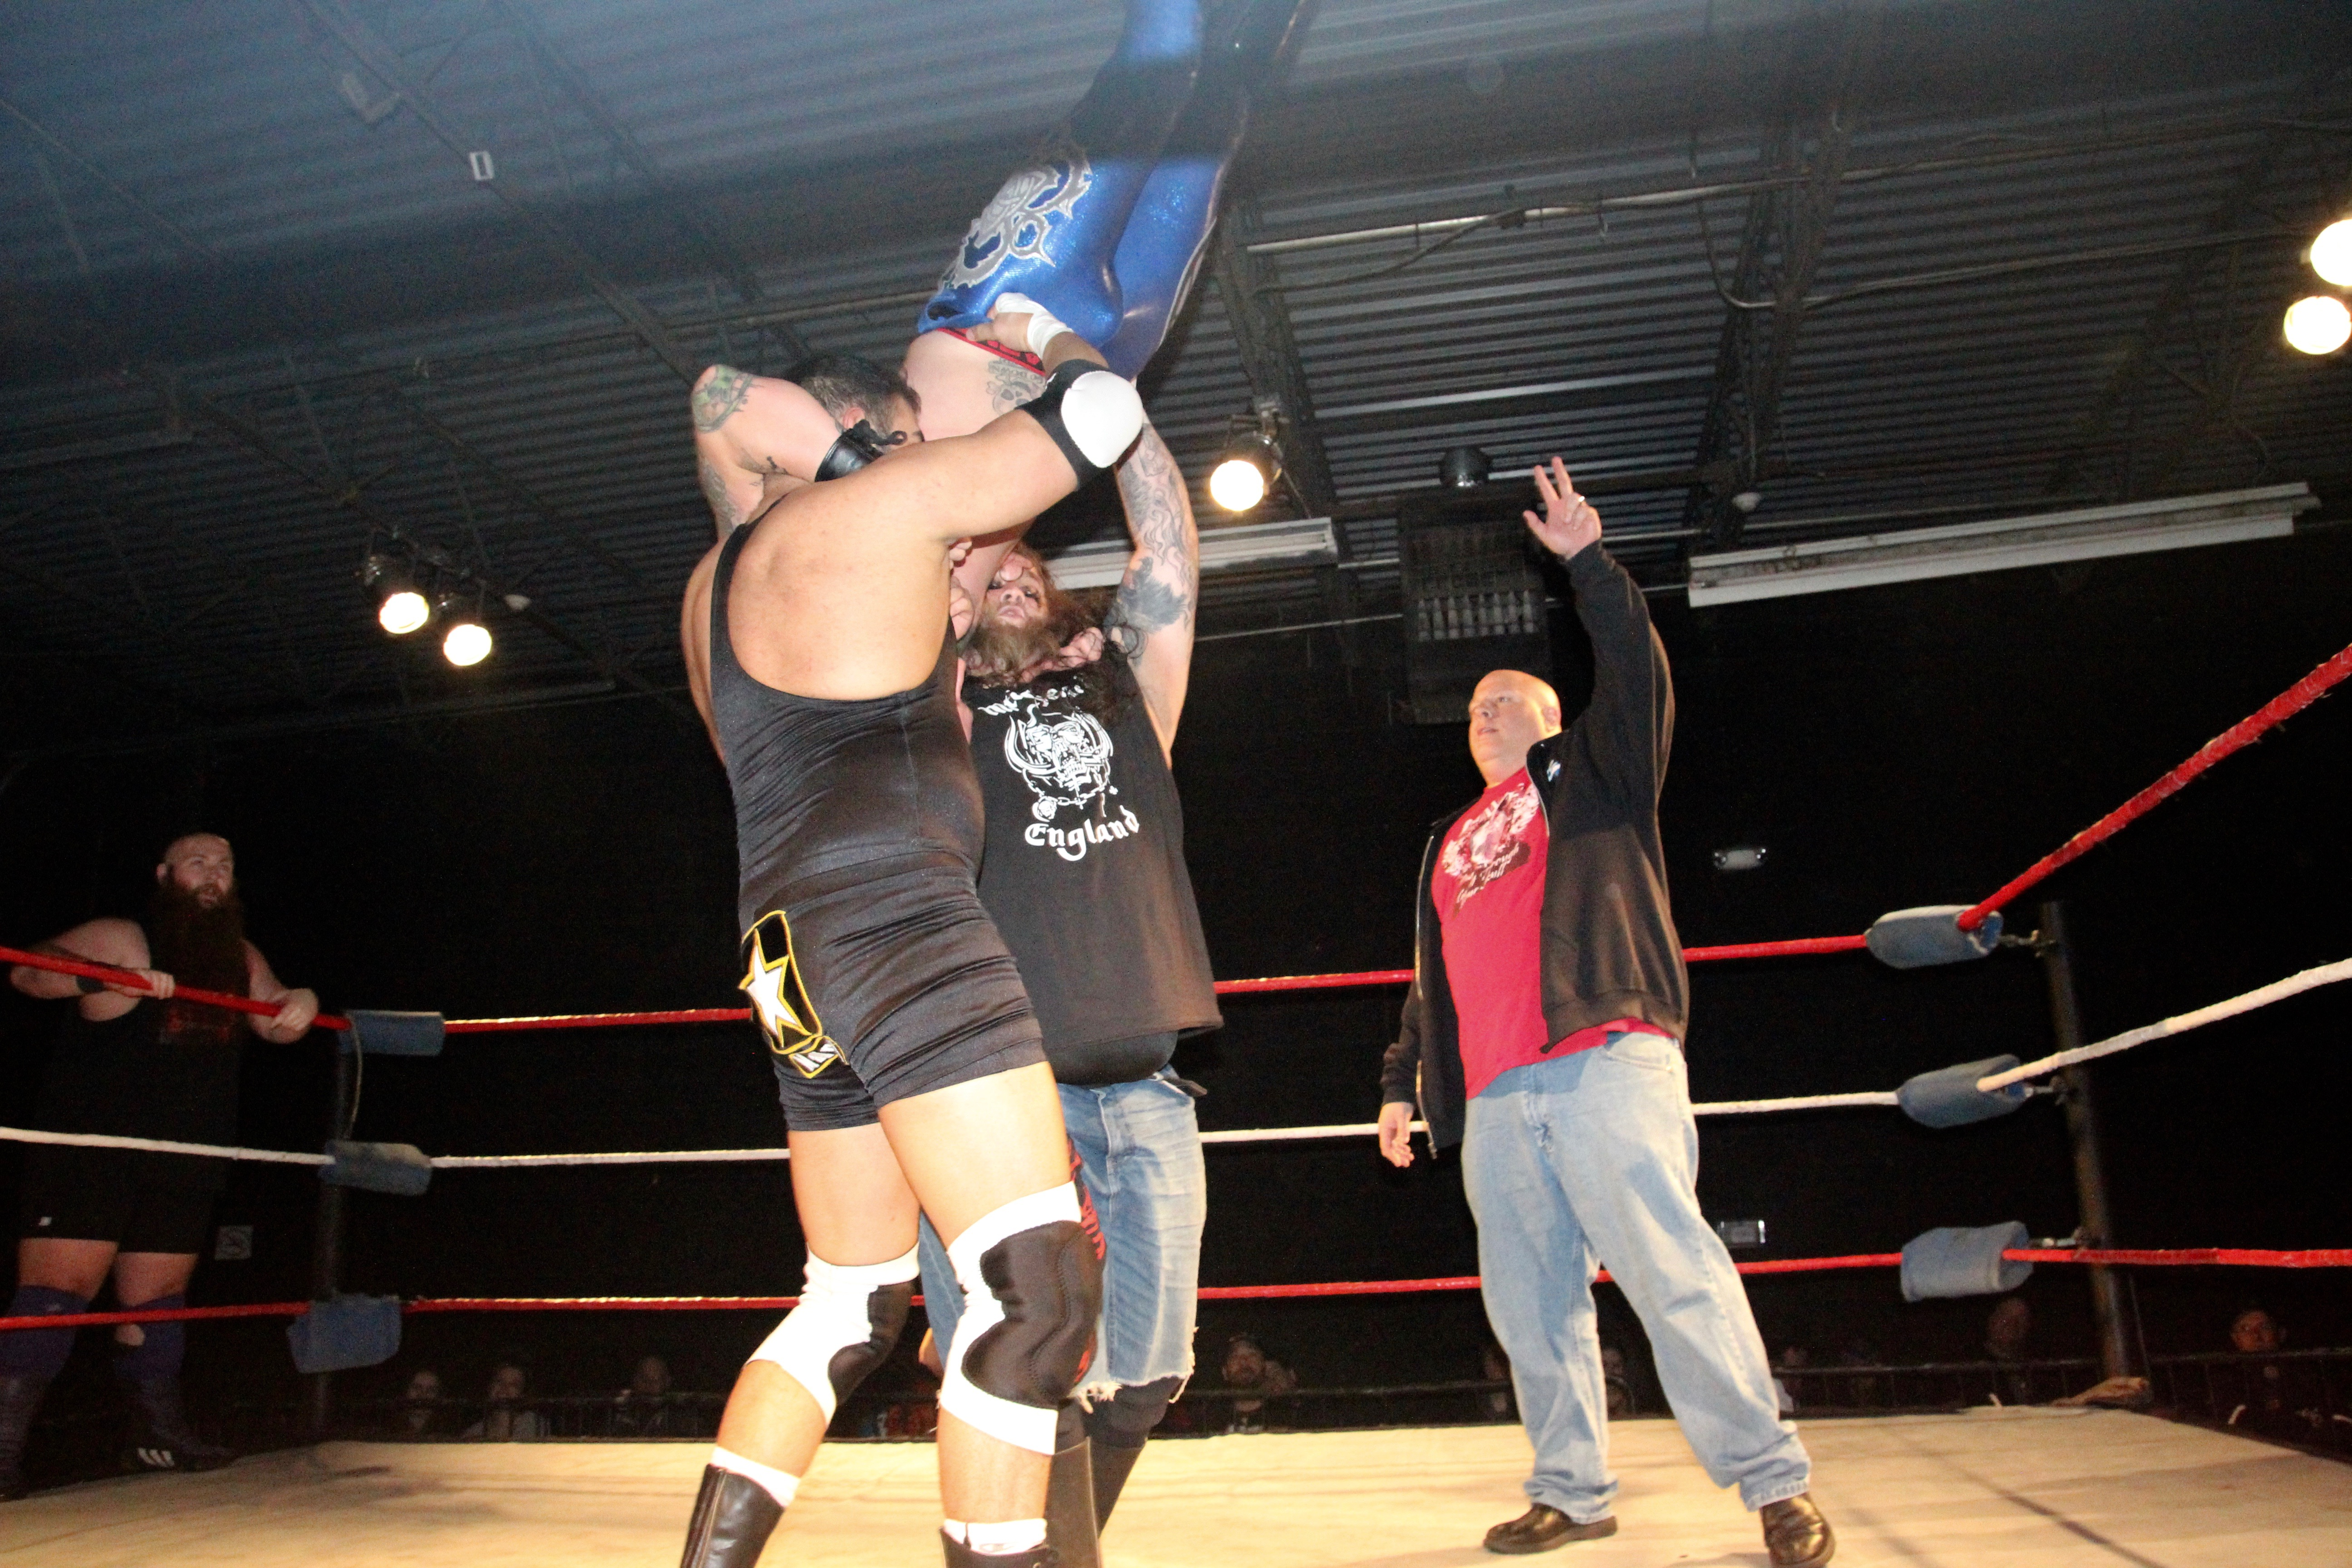 MIKEY WHIPWRECK AUTHORITY